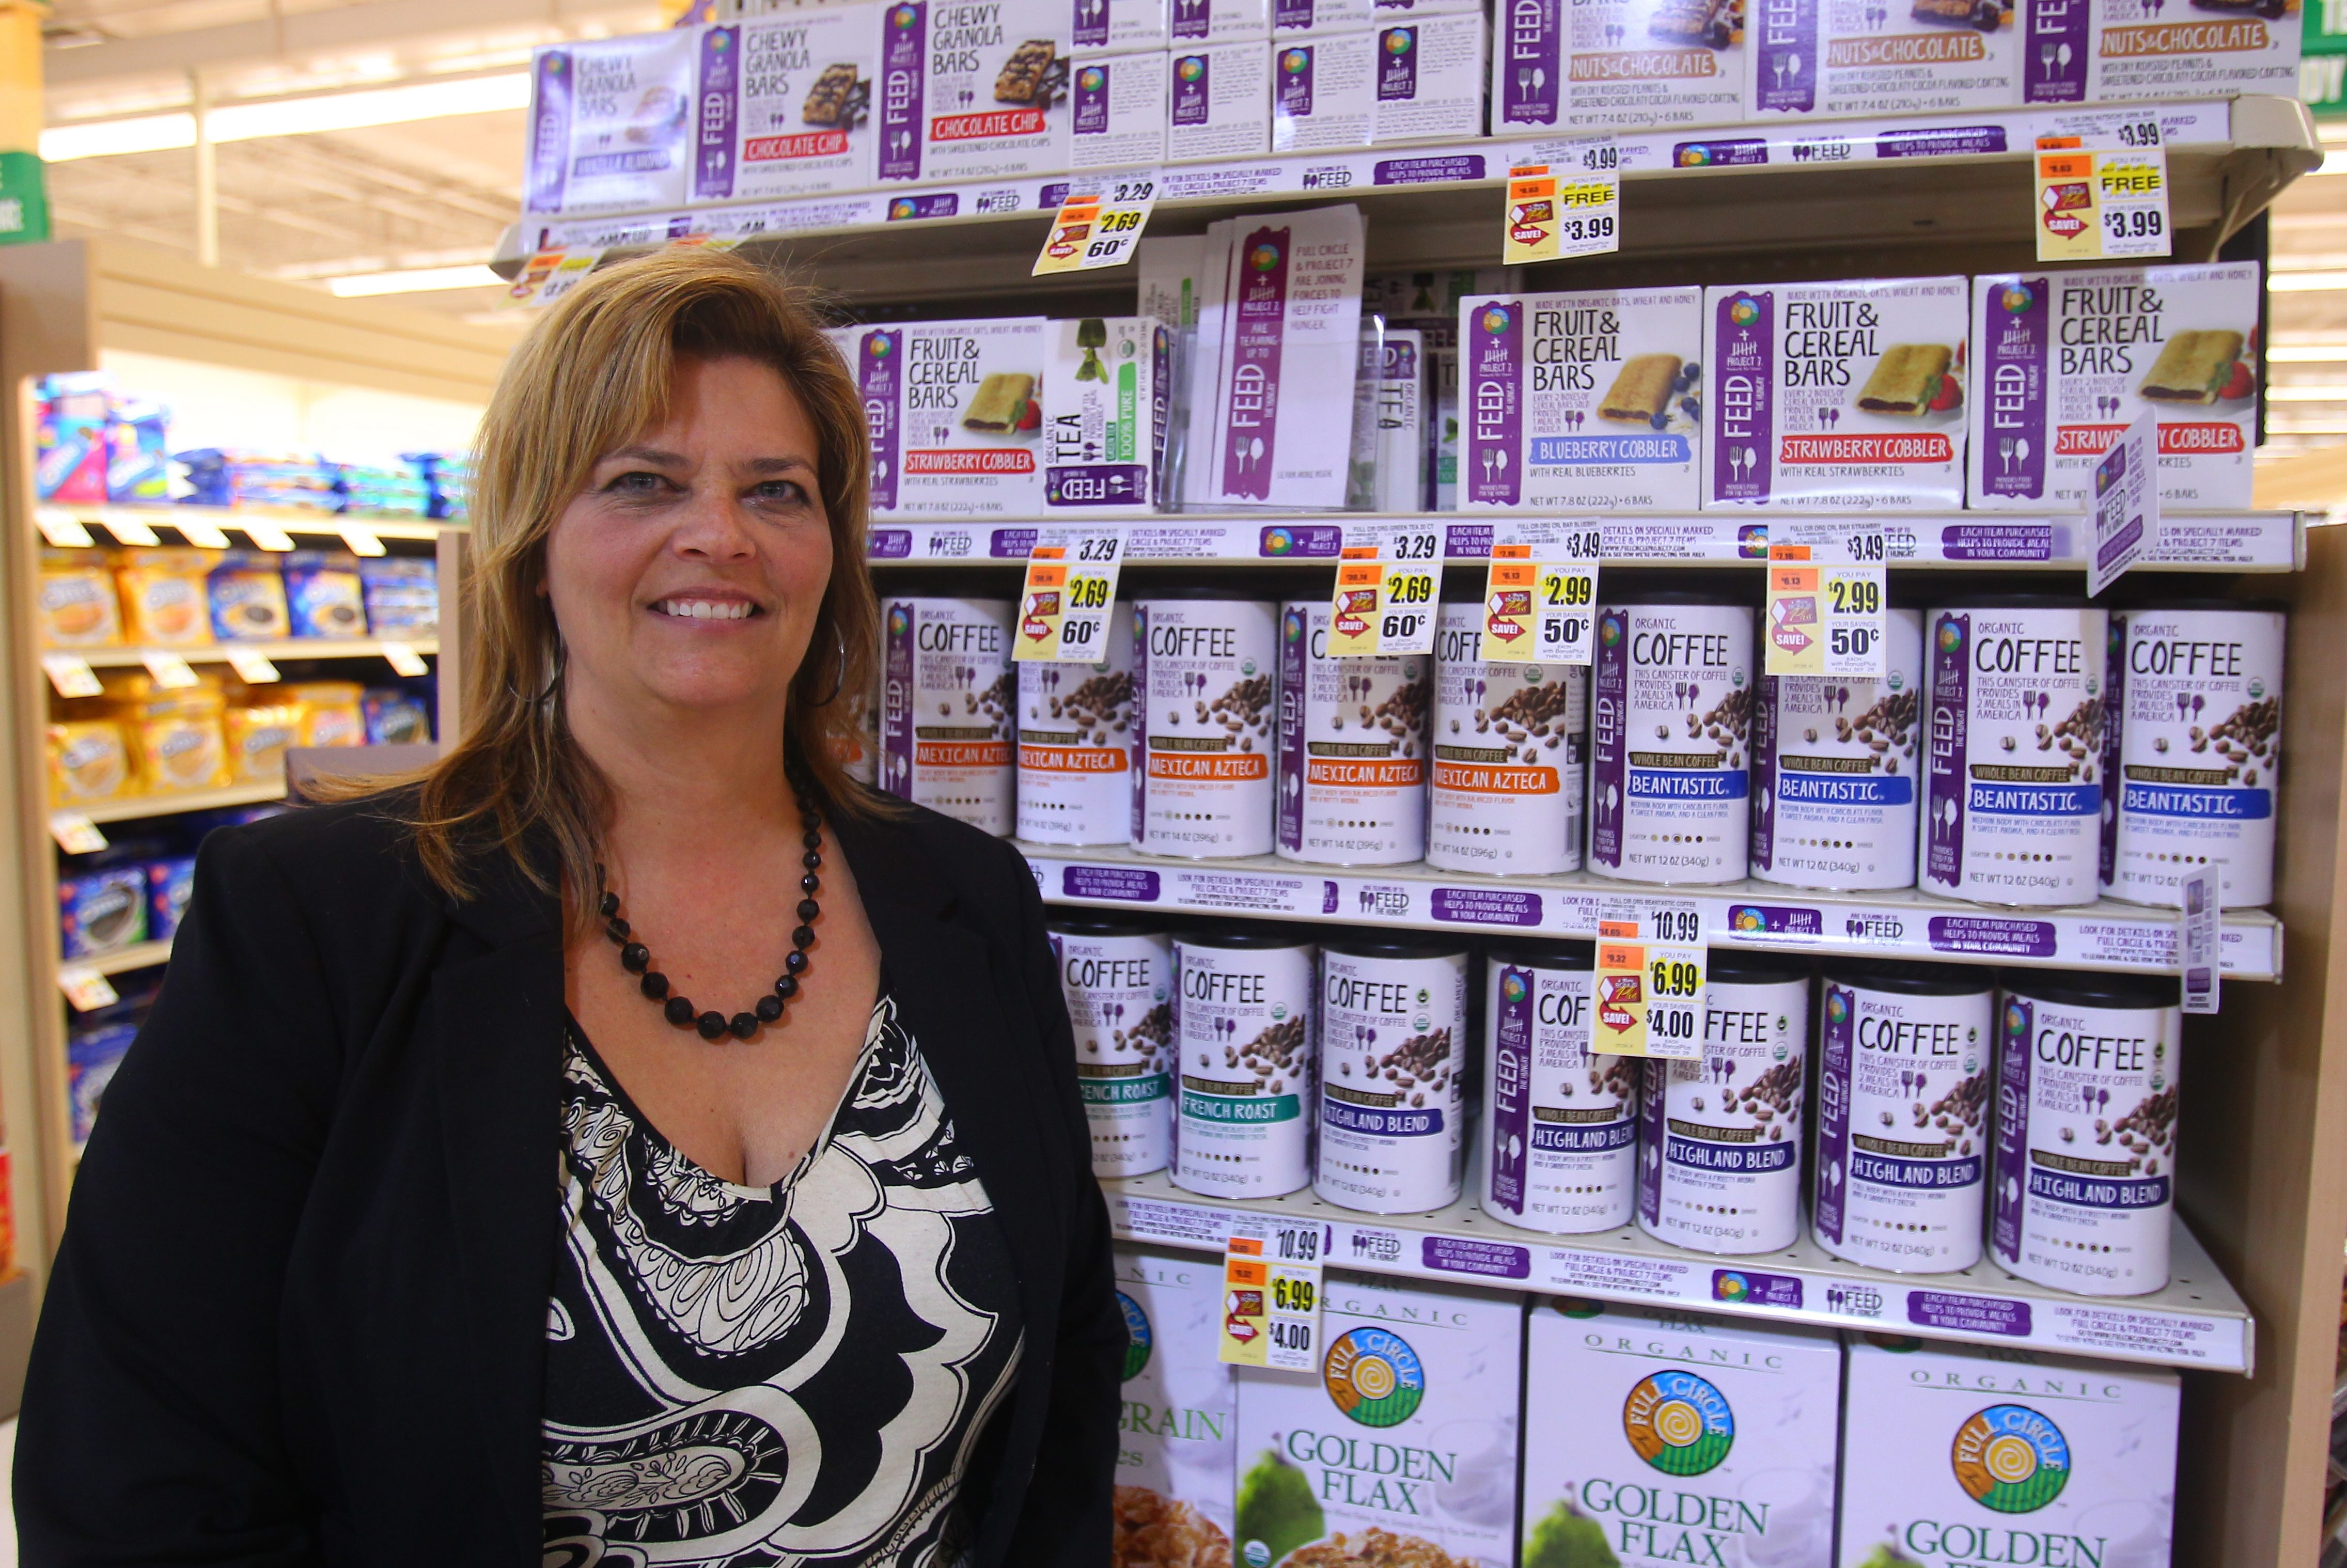 Paula Yoder-McMahon and her six-member team are tasked with finding healthy food trends for specialty, ethnic, health and natural products at Tops Markets.